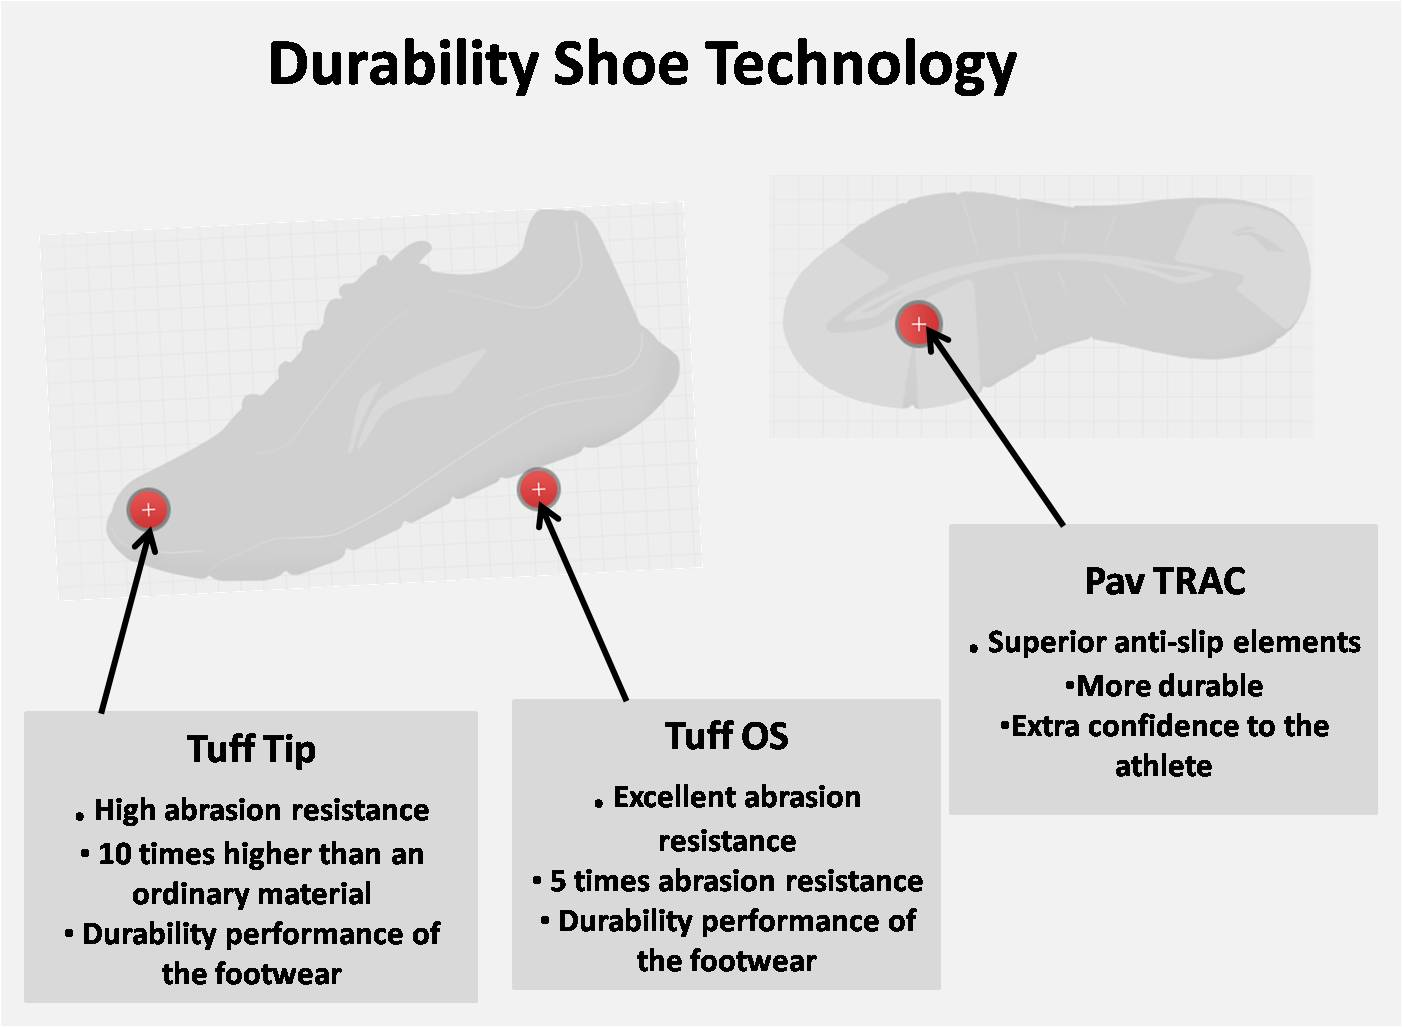 Durability shoe technology